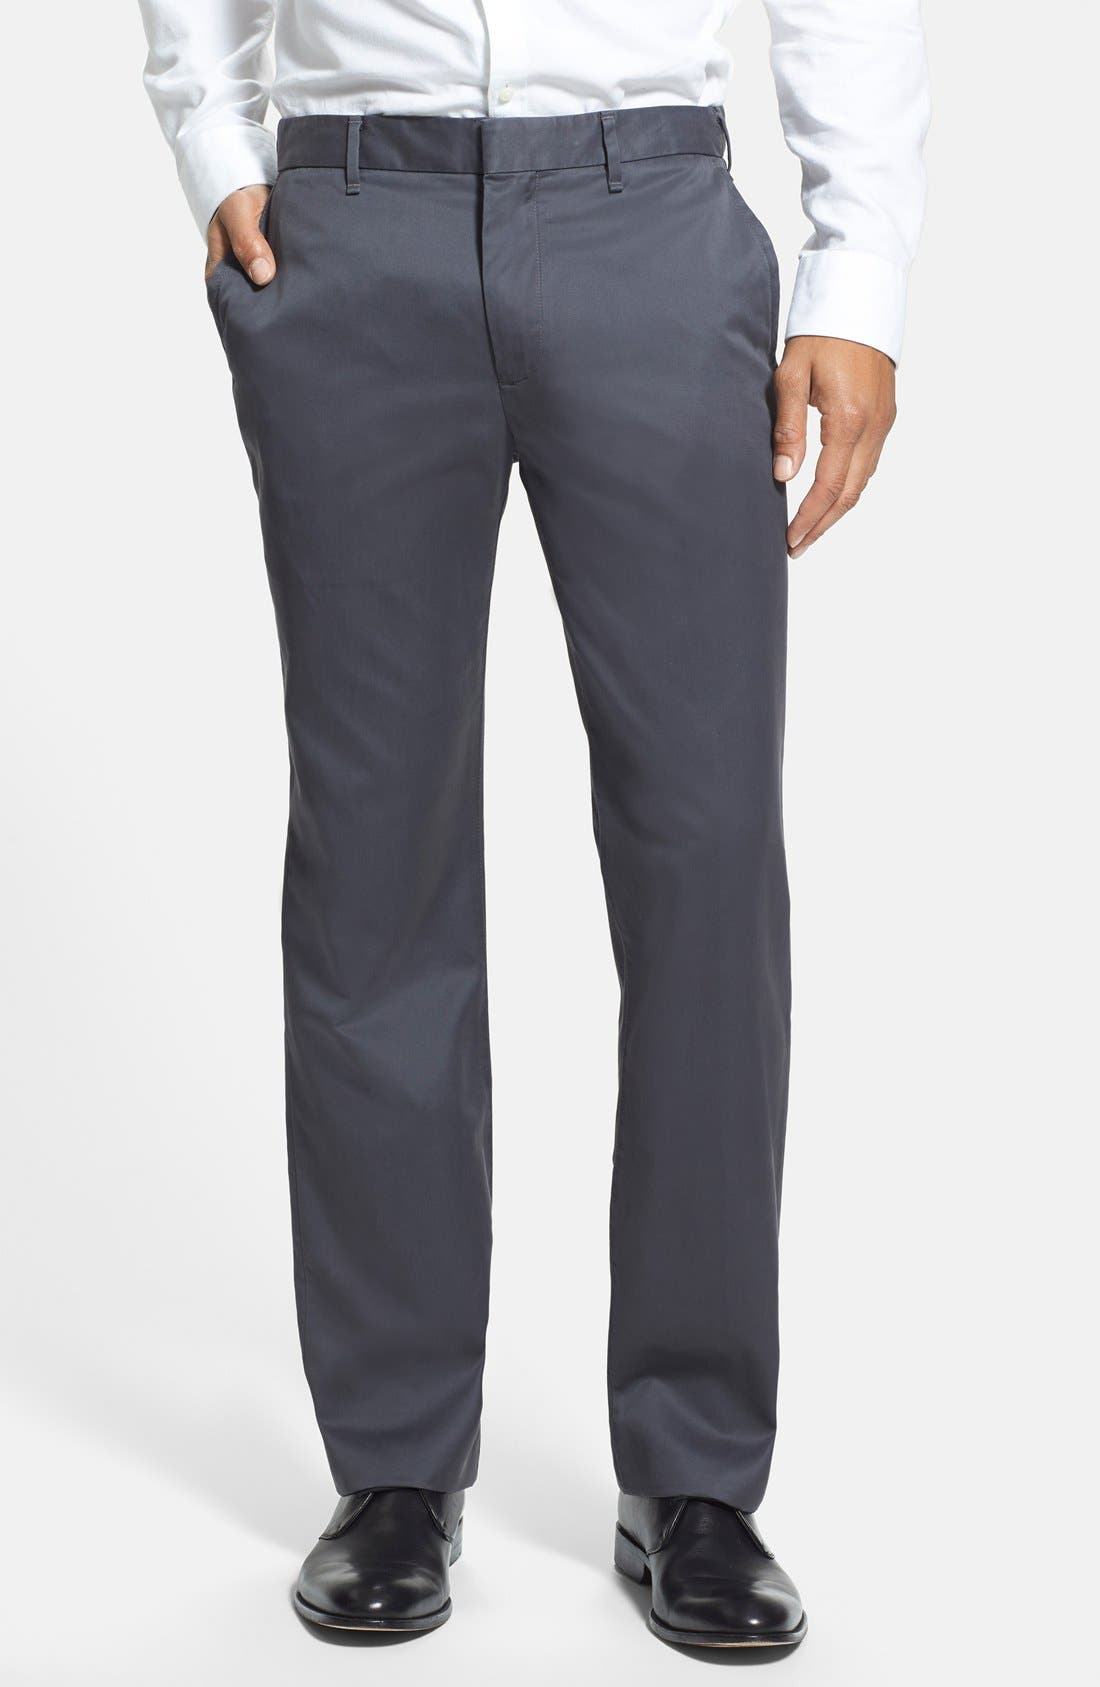 Alternate Image 1 Selected - Bonobos 'Weekday Warriors' Non-Iron Straight Leg Cotton Pants